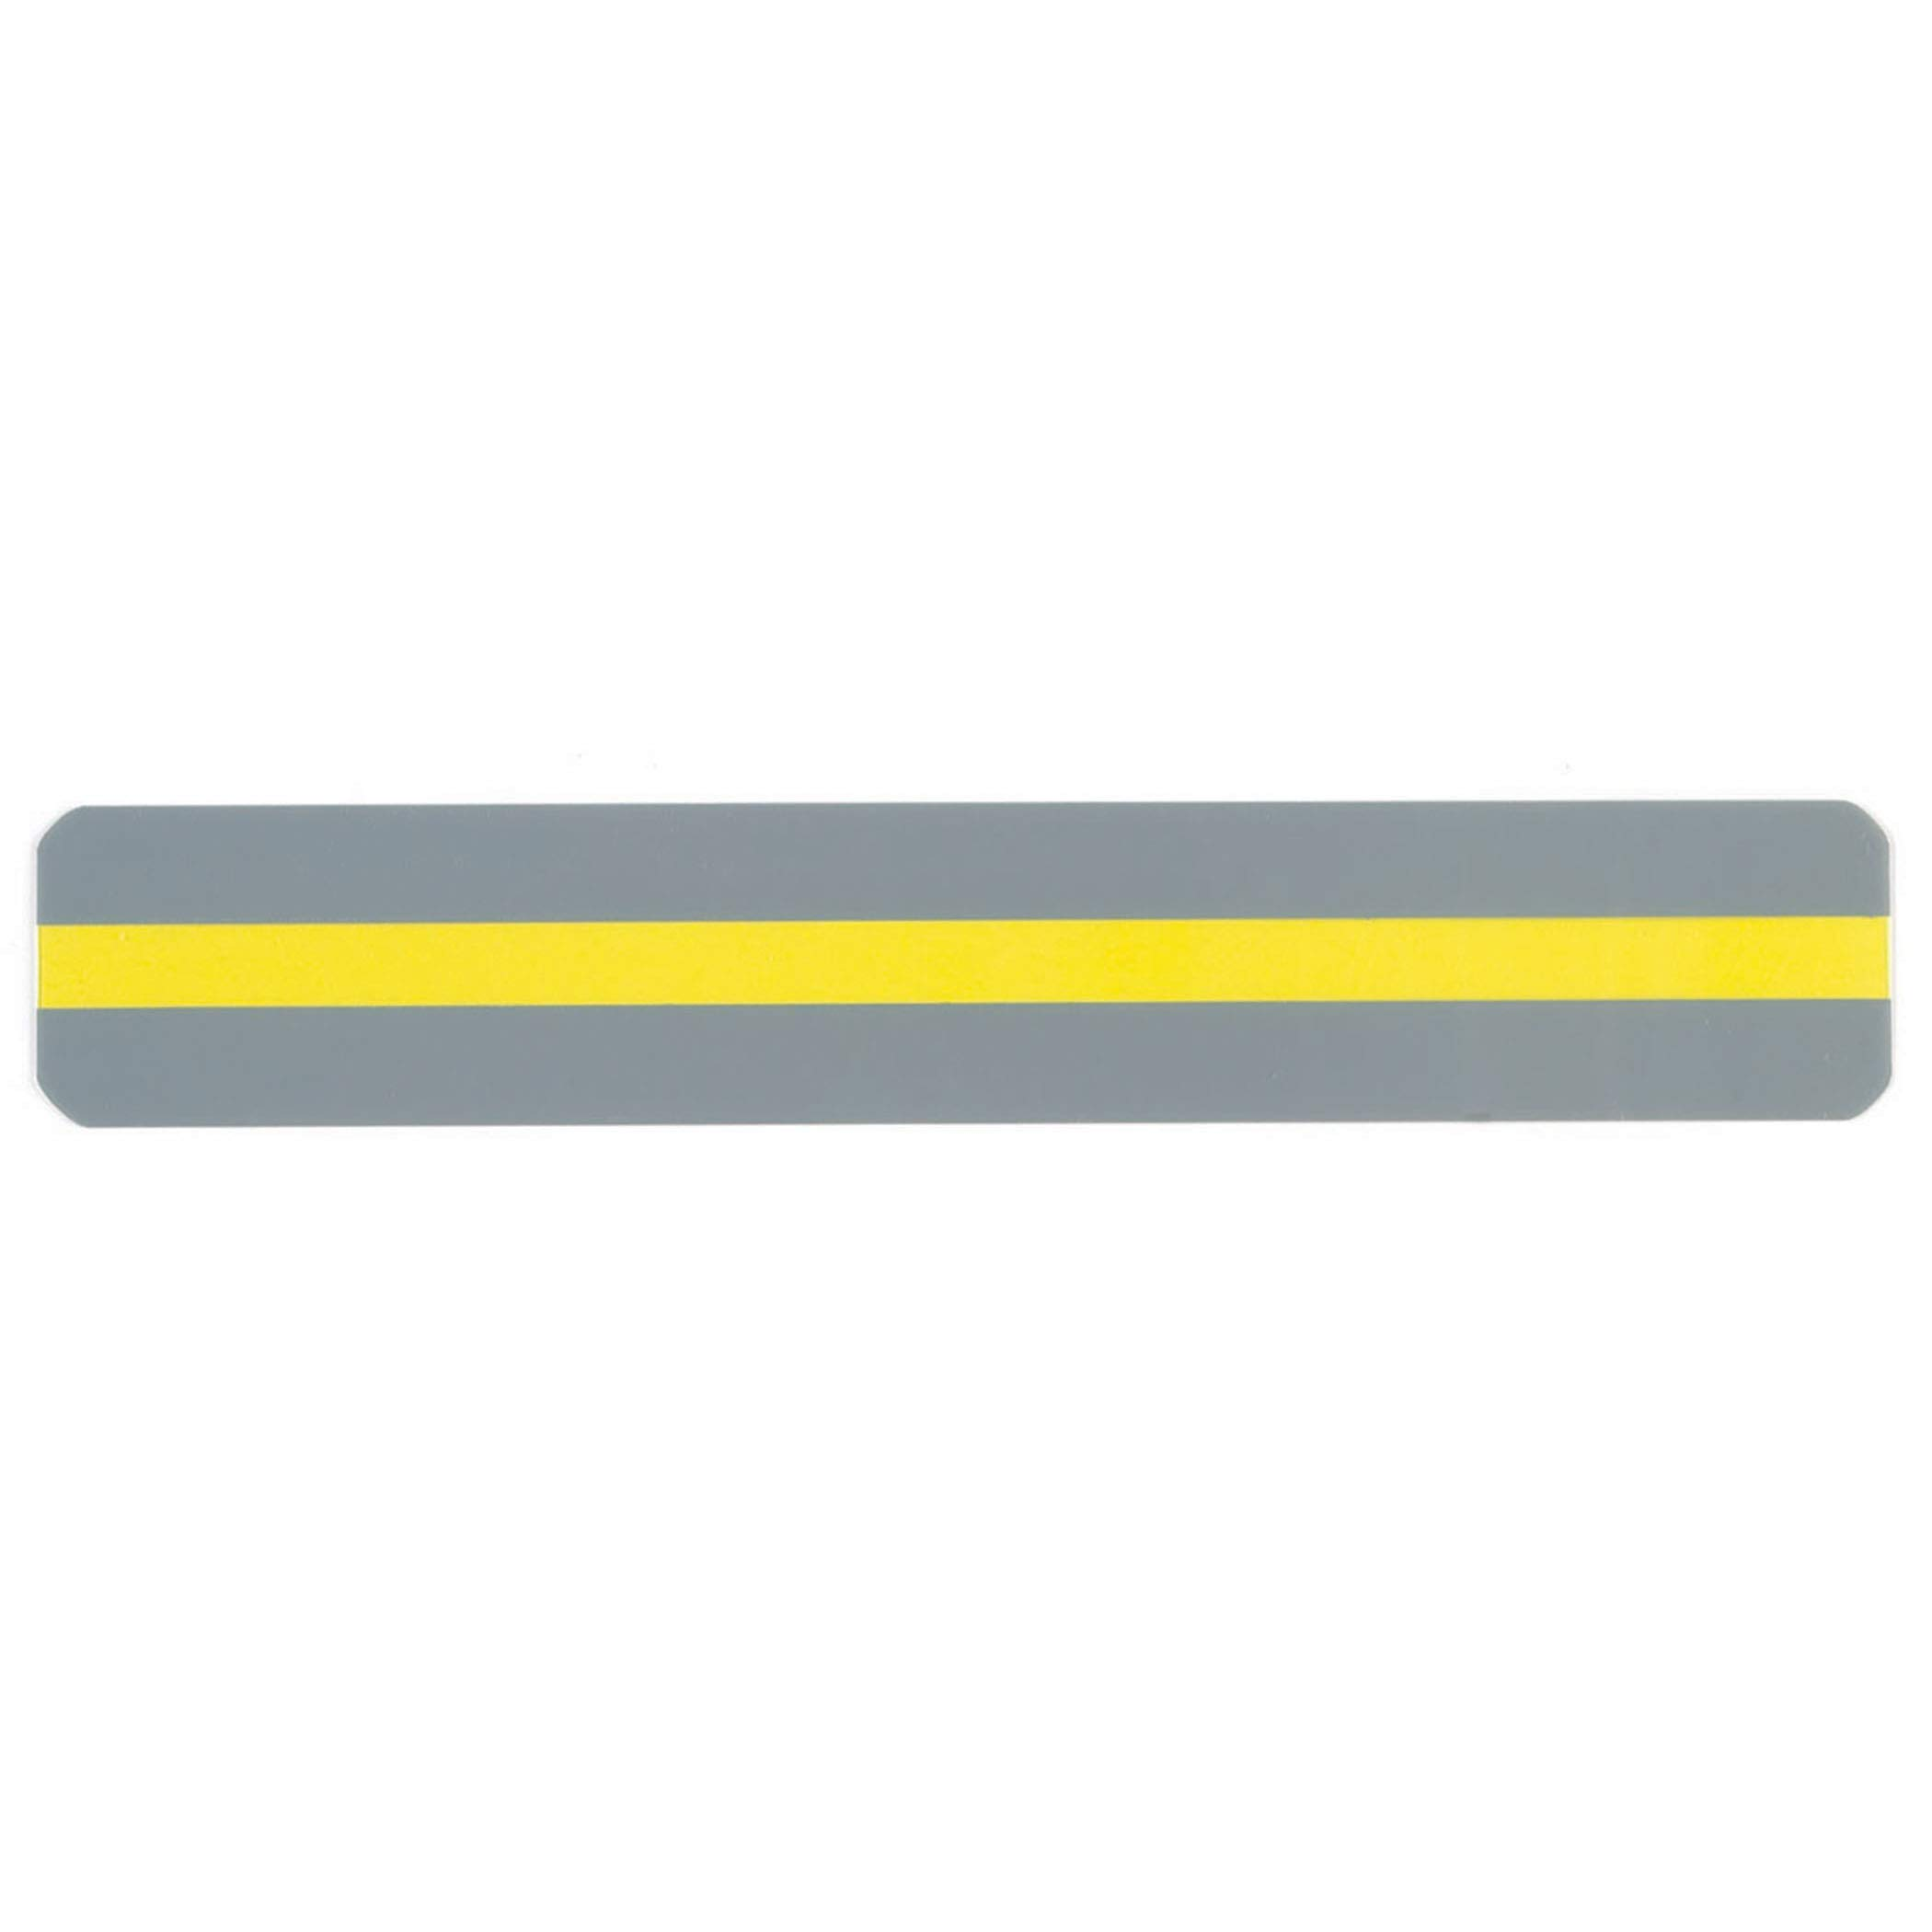 Ashley Productions ASH10850BN Sentence Strip Reading Guides, Yellow, Pack of 36 by Ashley Productions